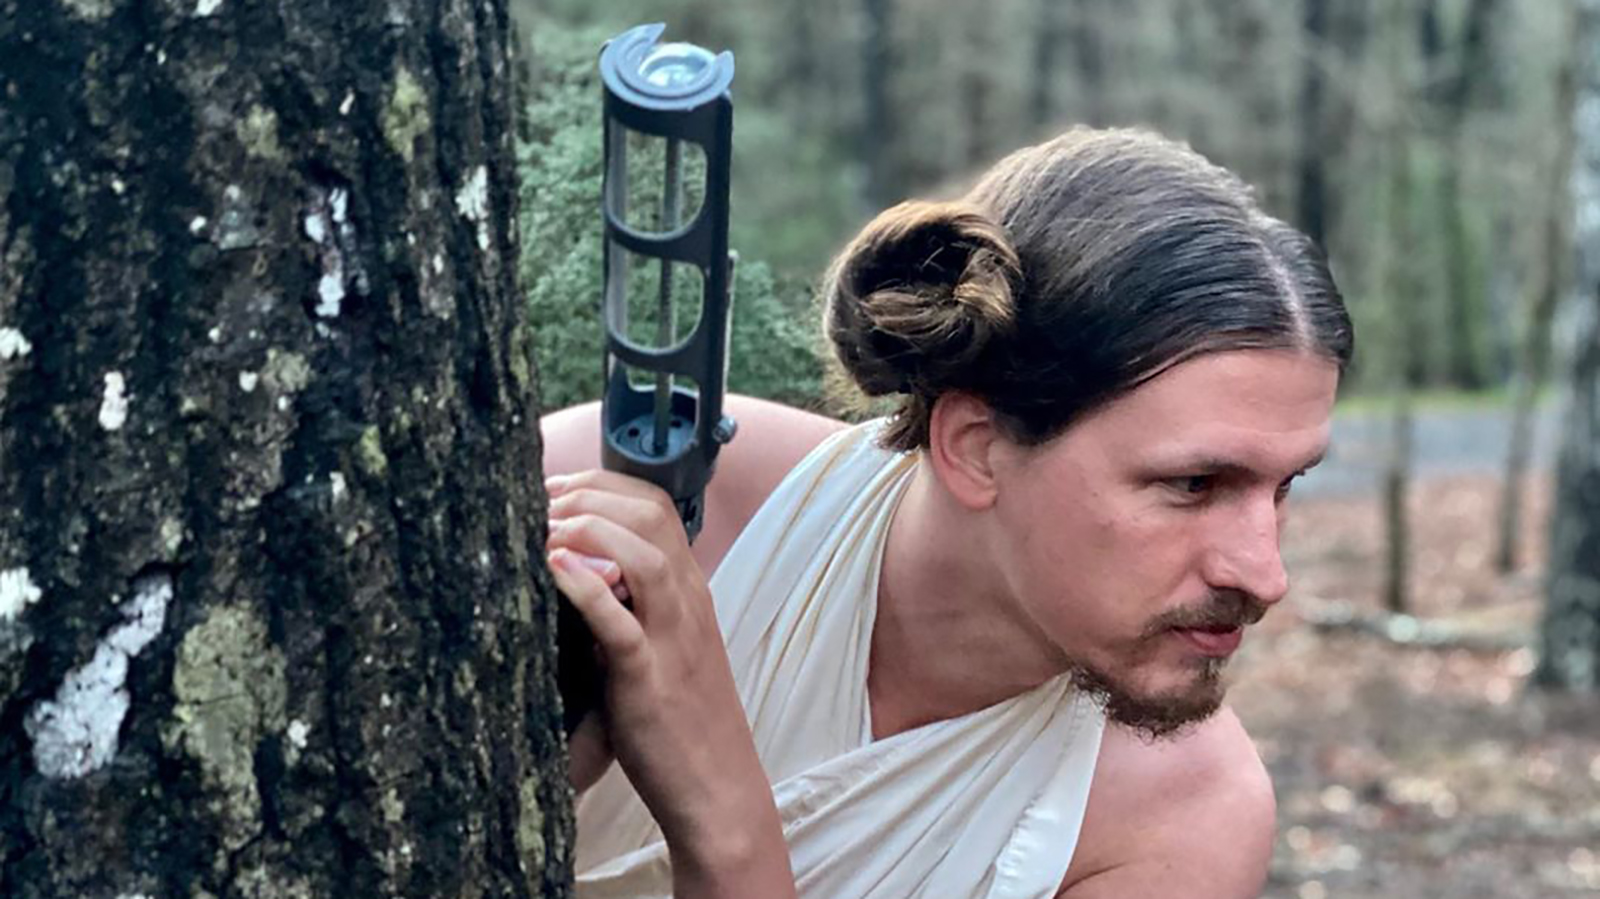 A hairstylist is using her spare time to turn her boyfriend into Princess Leia and Joe Exotic